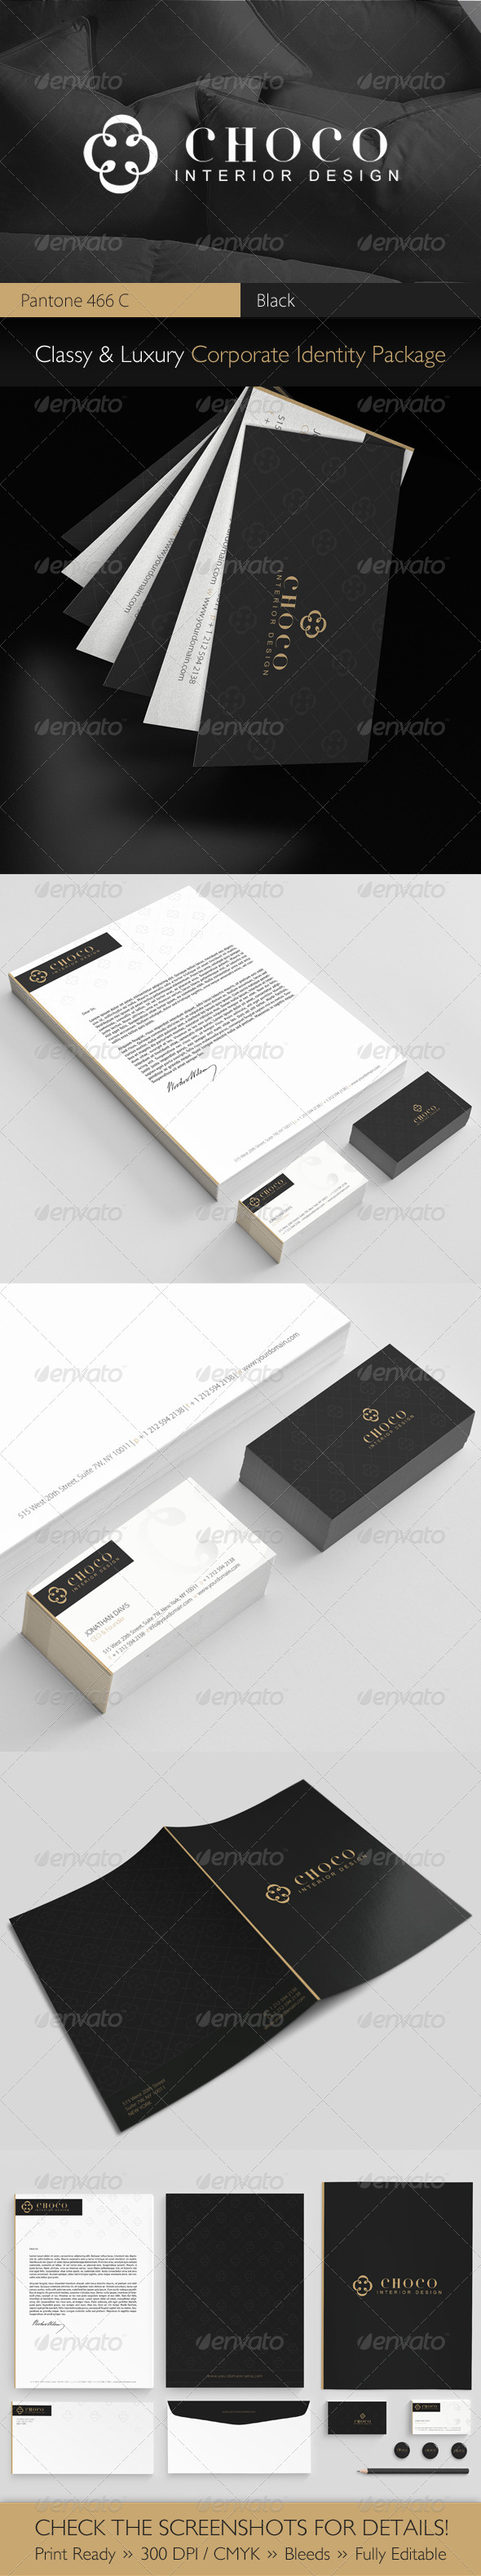 GraphicRiver Choco Luxury Corporate Identity Package 3448668